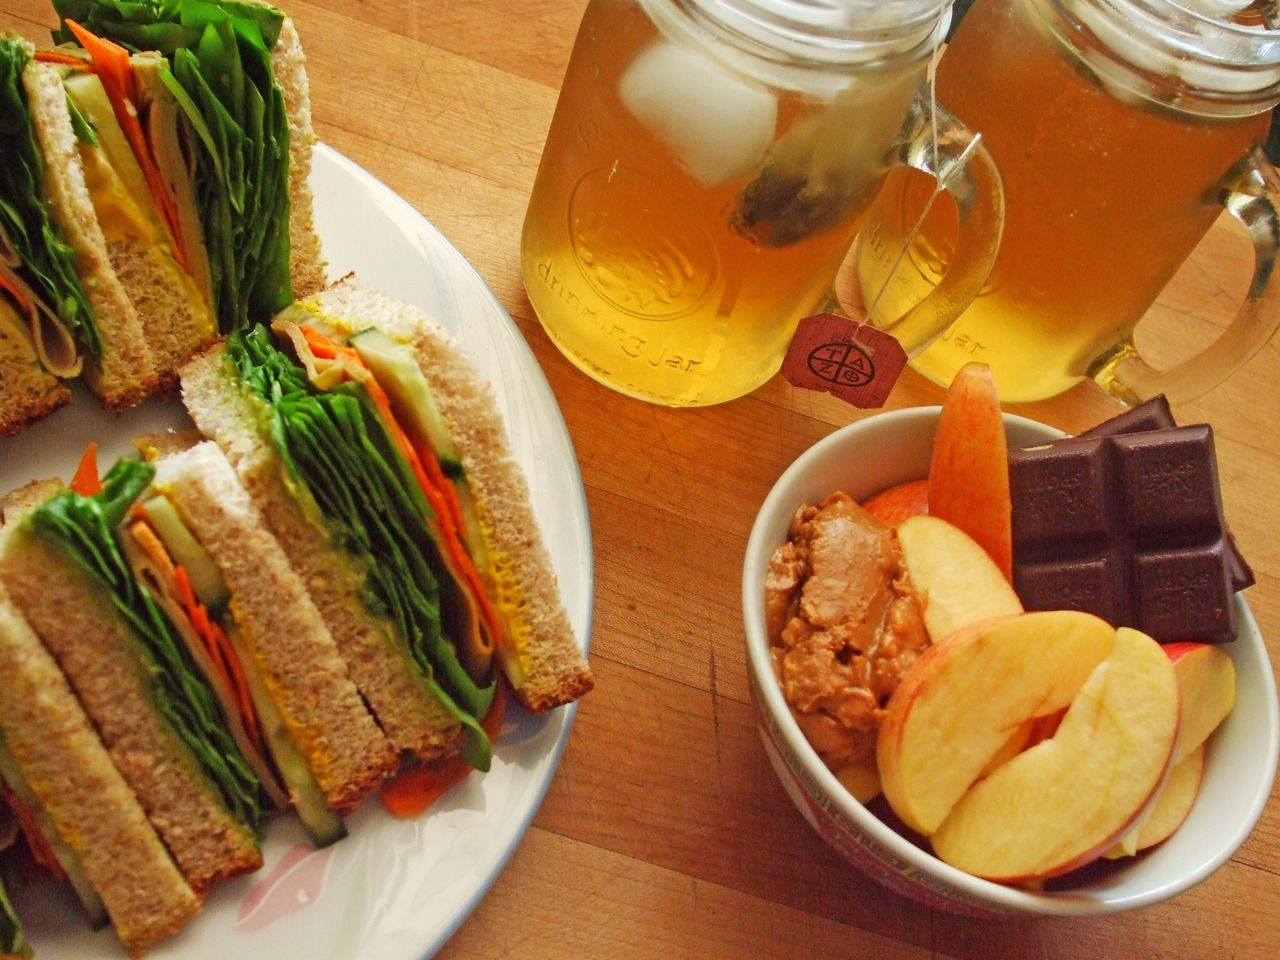 sandwiches on whole wheat bread with spinach, carrot